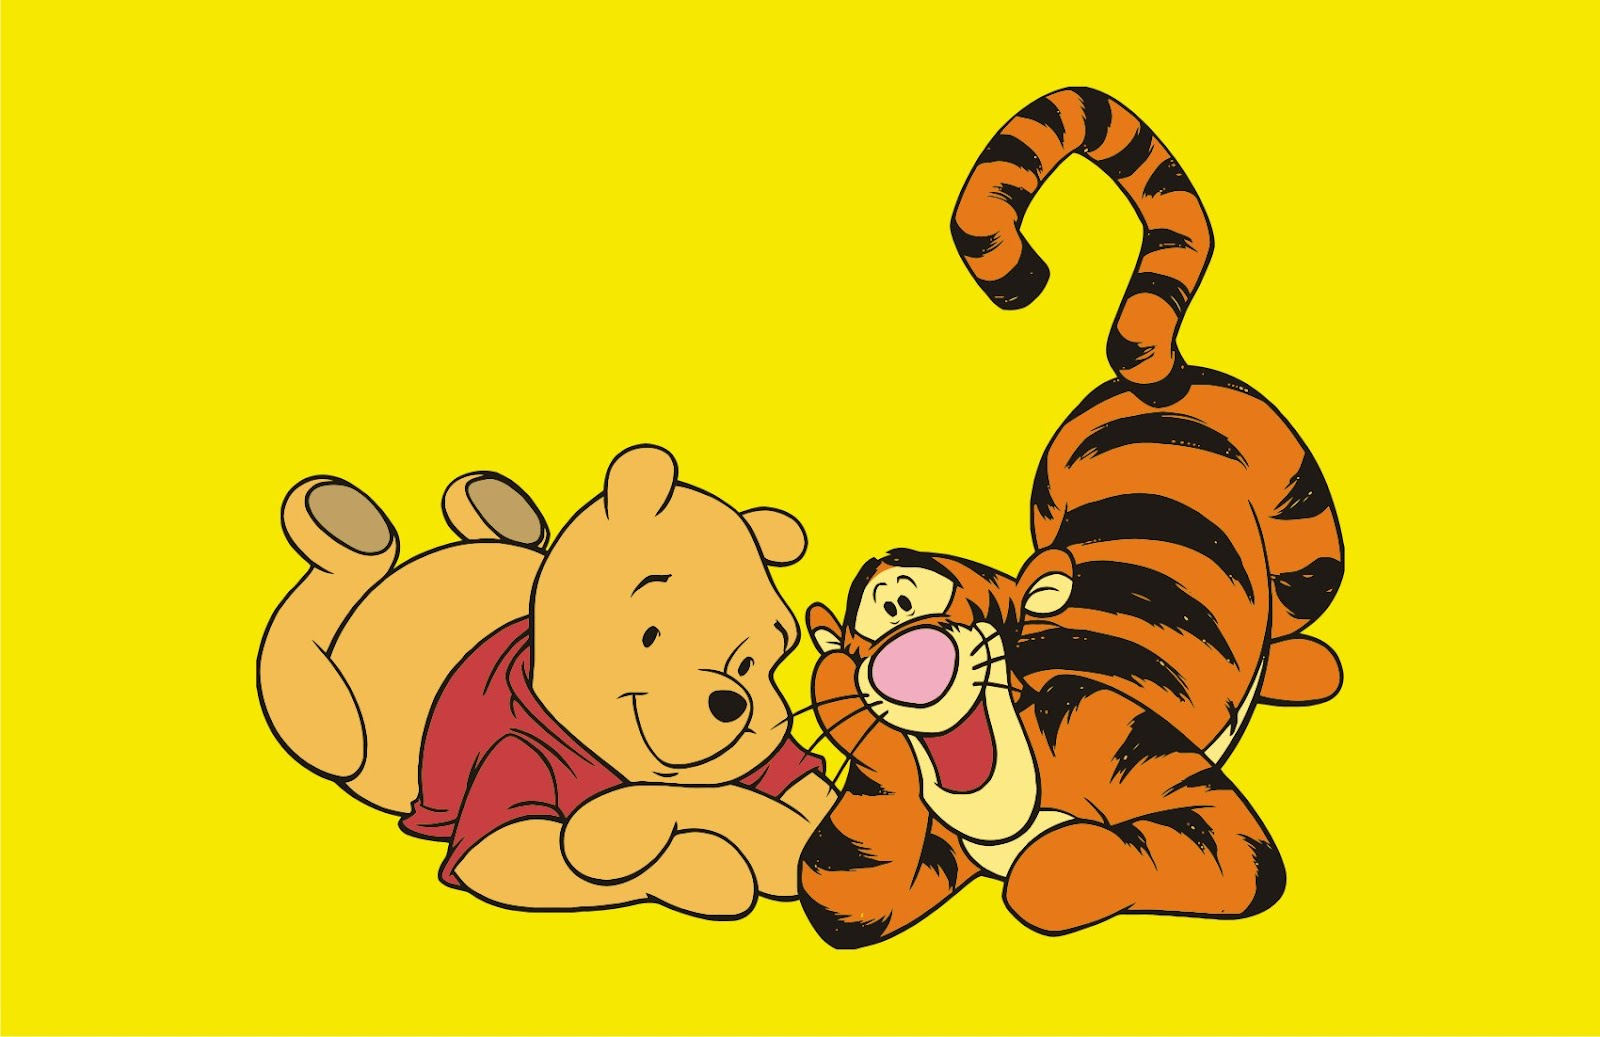 winnie_the_pooh-pooh_and_tigger-front